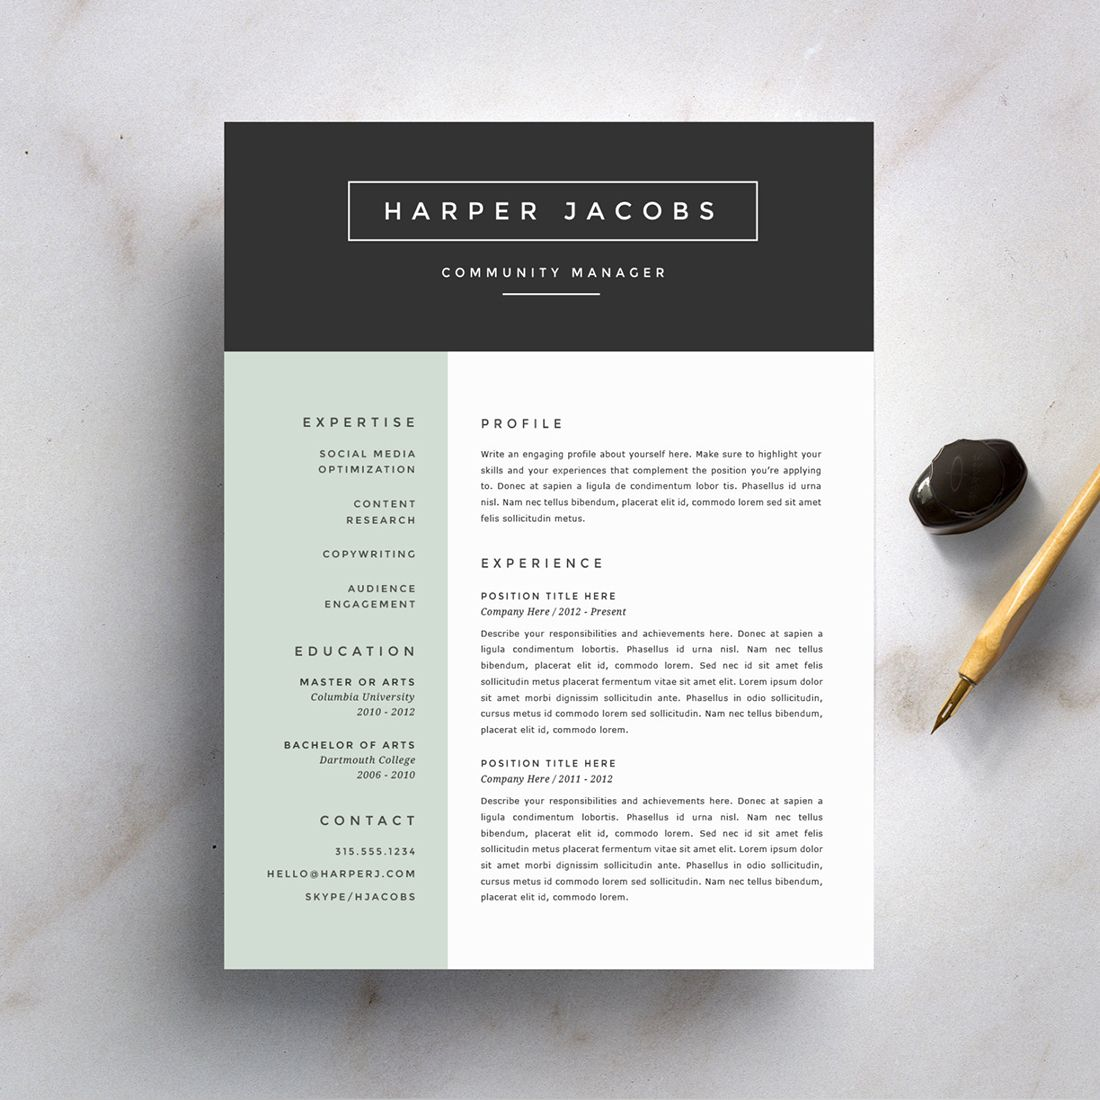 resume Font For A Resume these are the best worst fonts to use on your resume resume